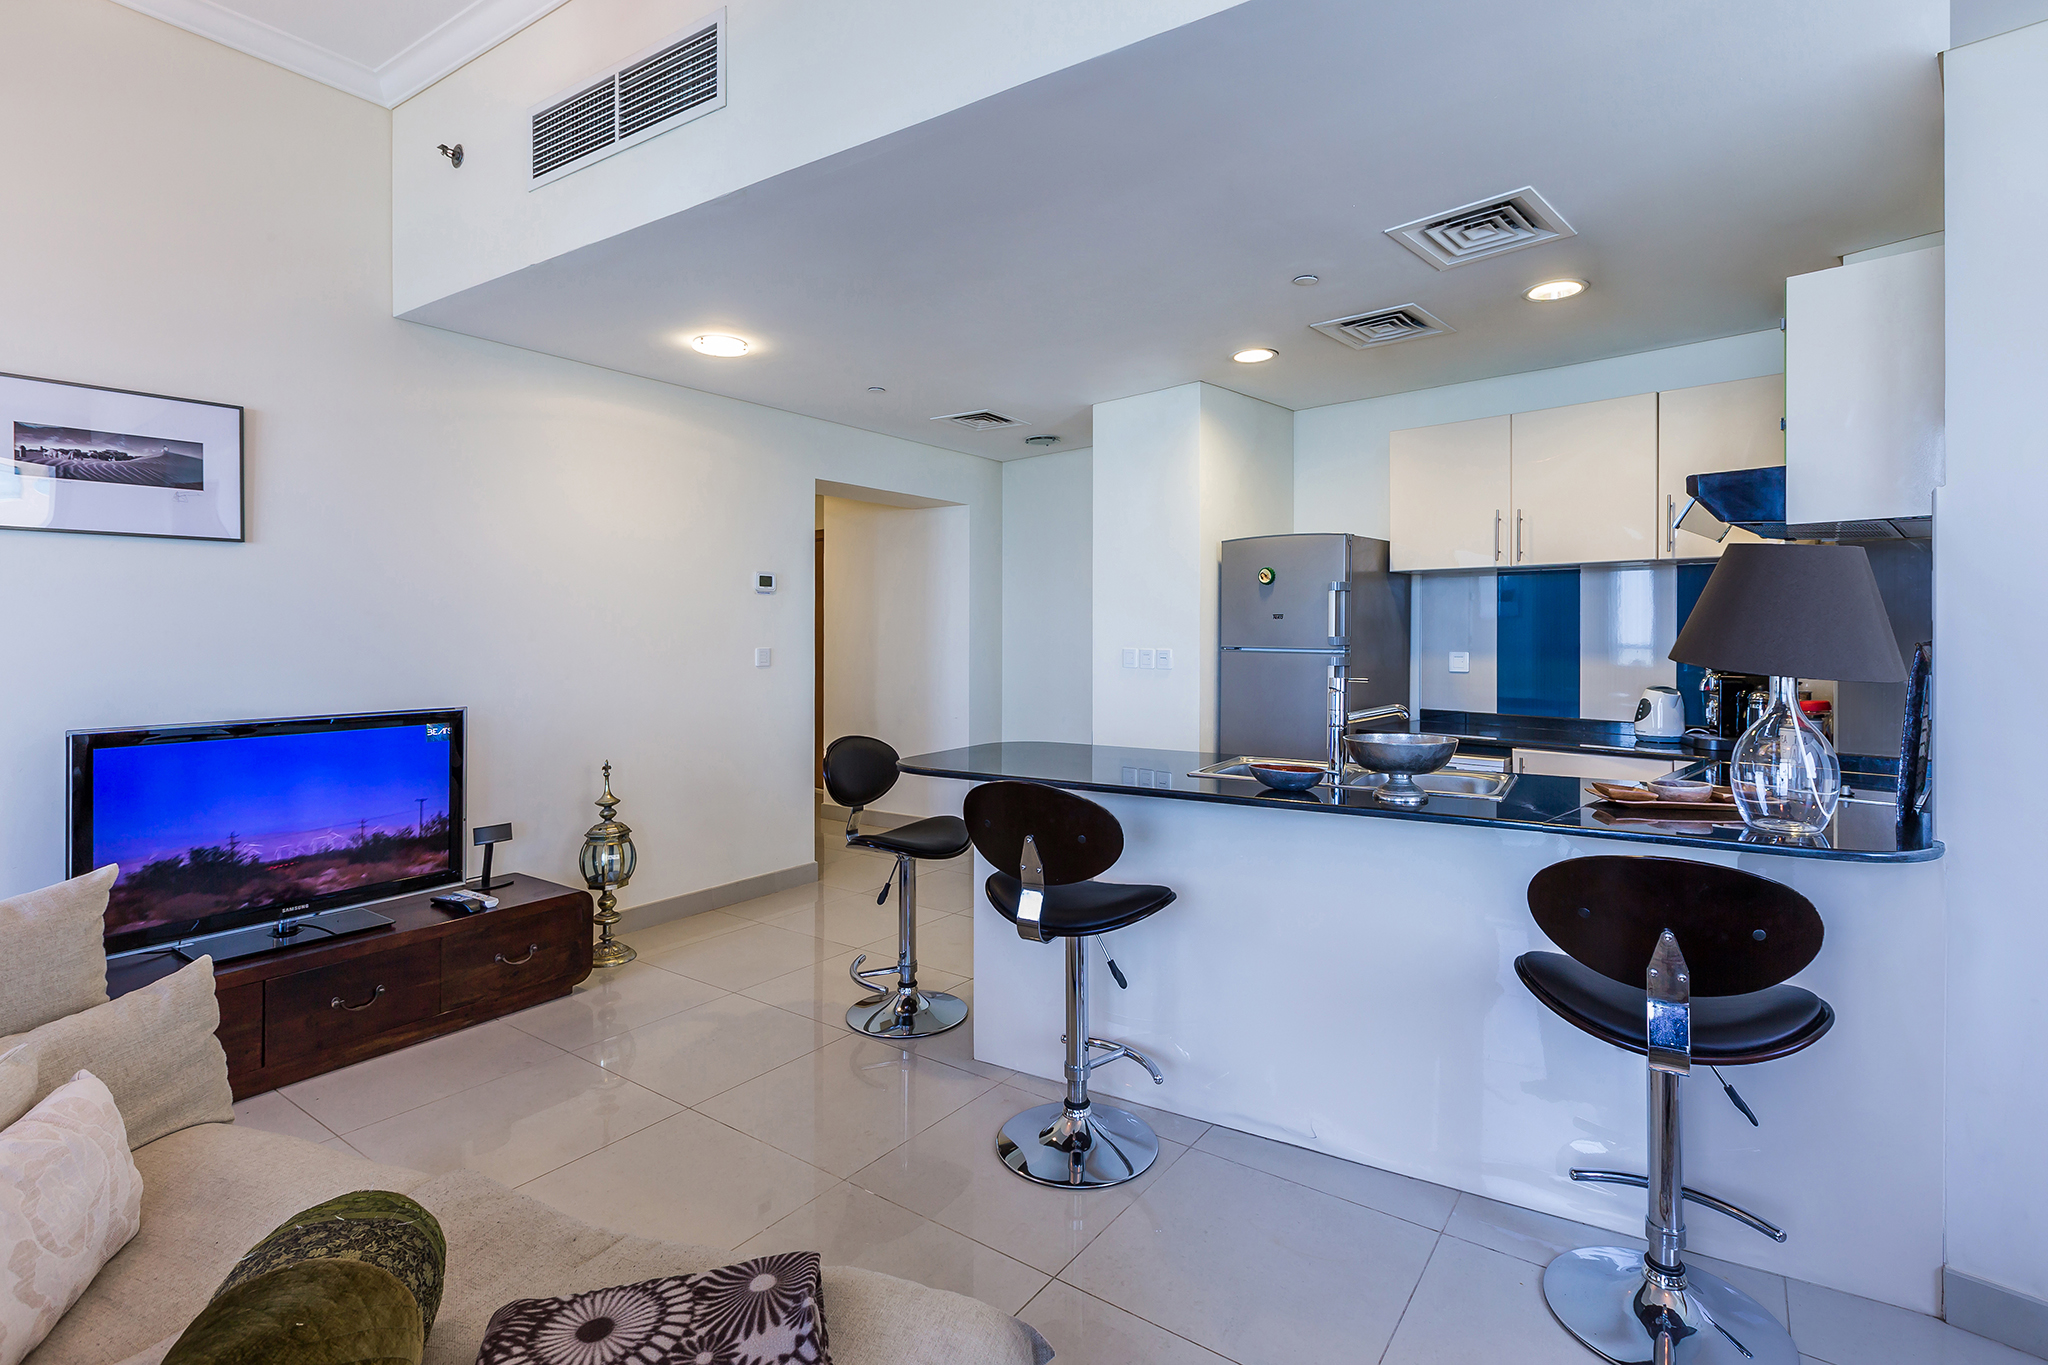 The kitchen and living area is complete with stylish & contemporary furnishings